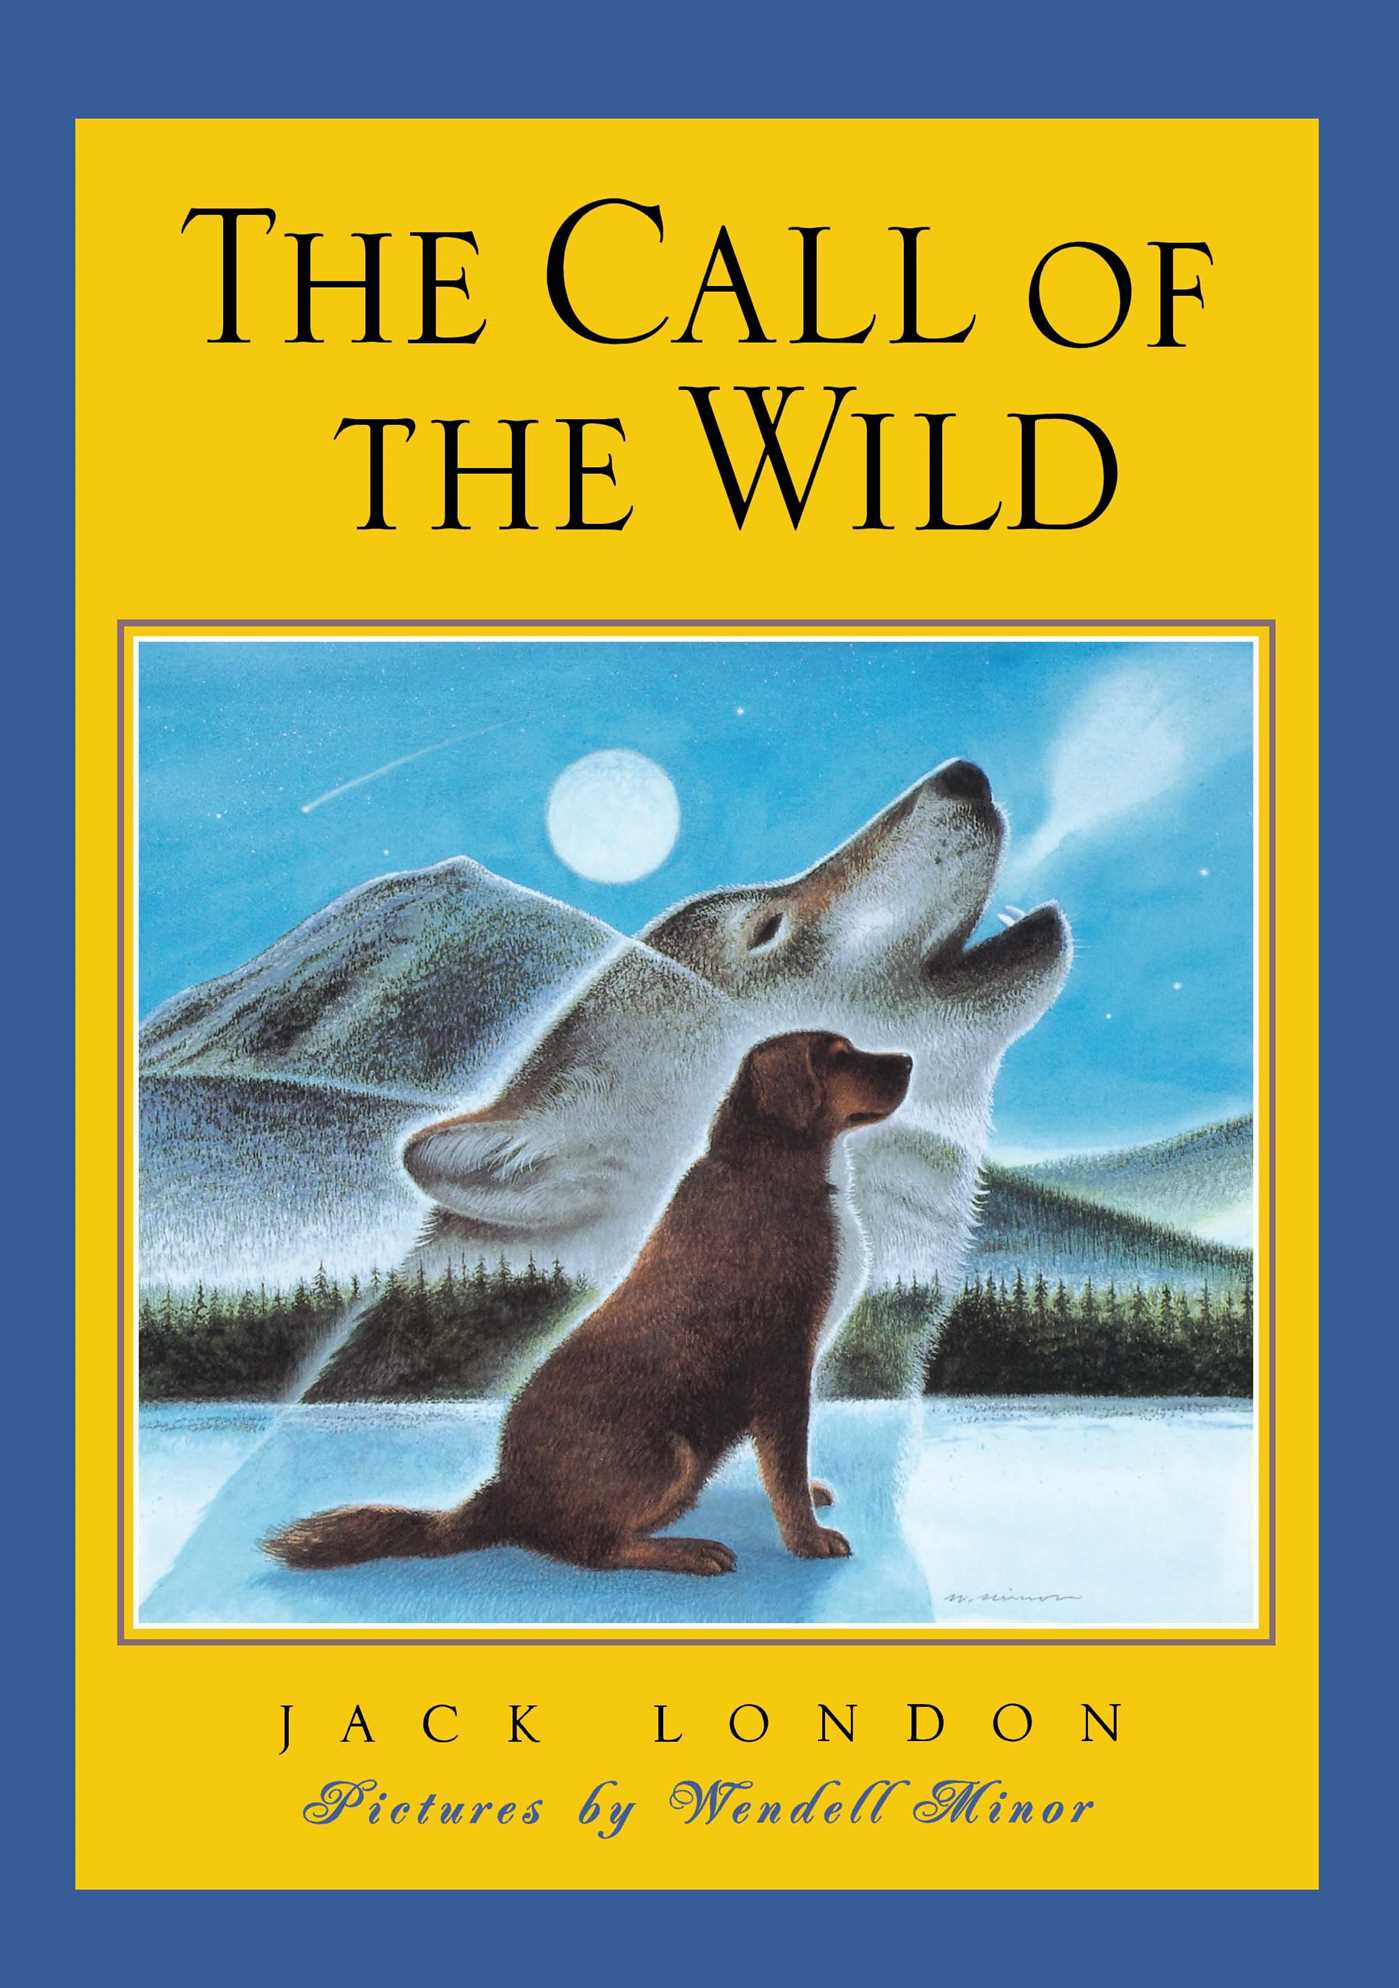 a literary analysis of the journey in the novel the call of the wild Dedicated two pages to the call of the wild in the book analysis of london's novel book is written with journey the village voice literary.